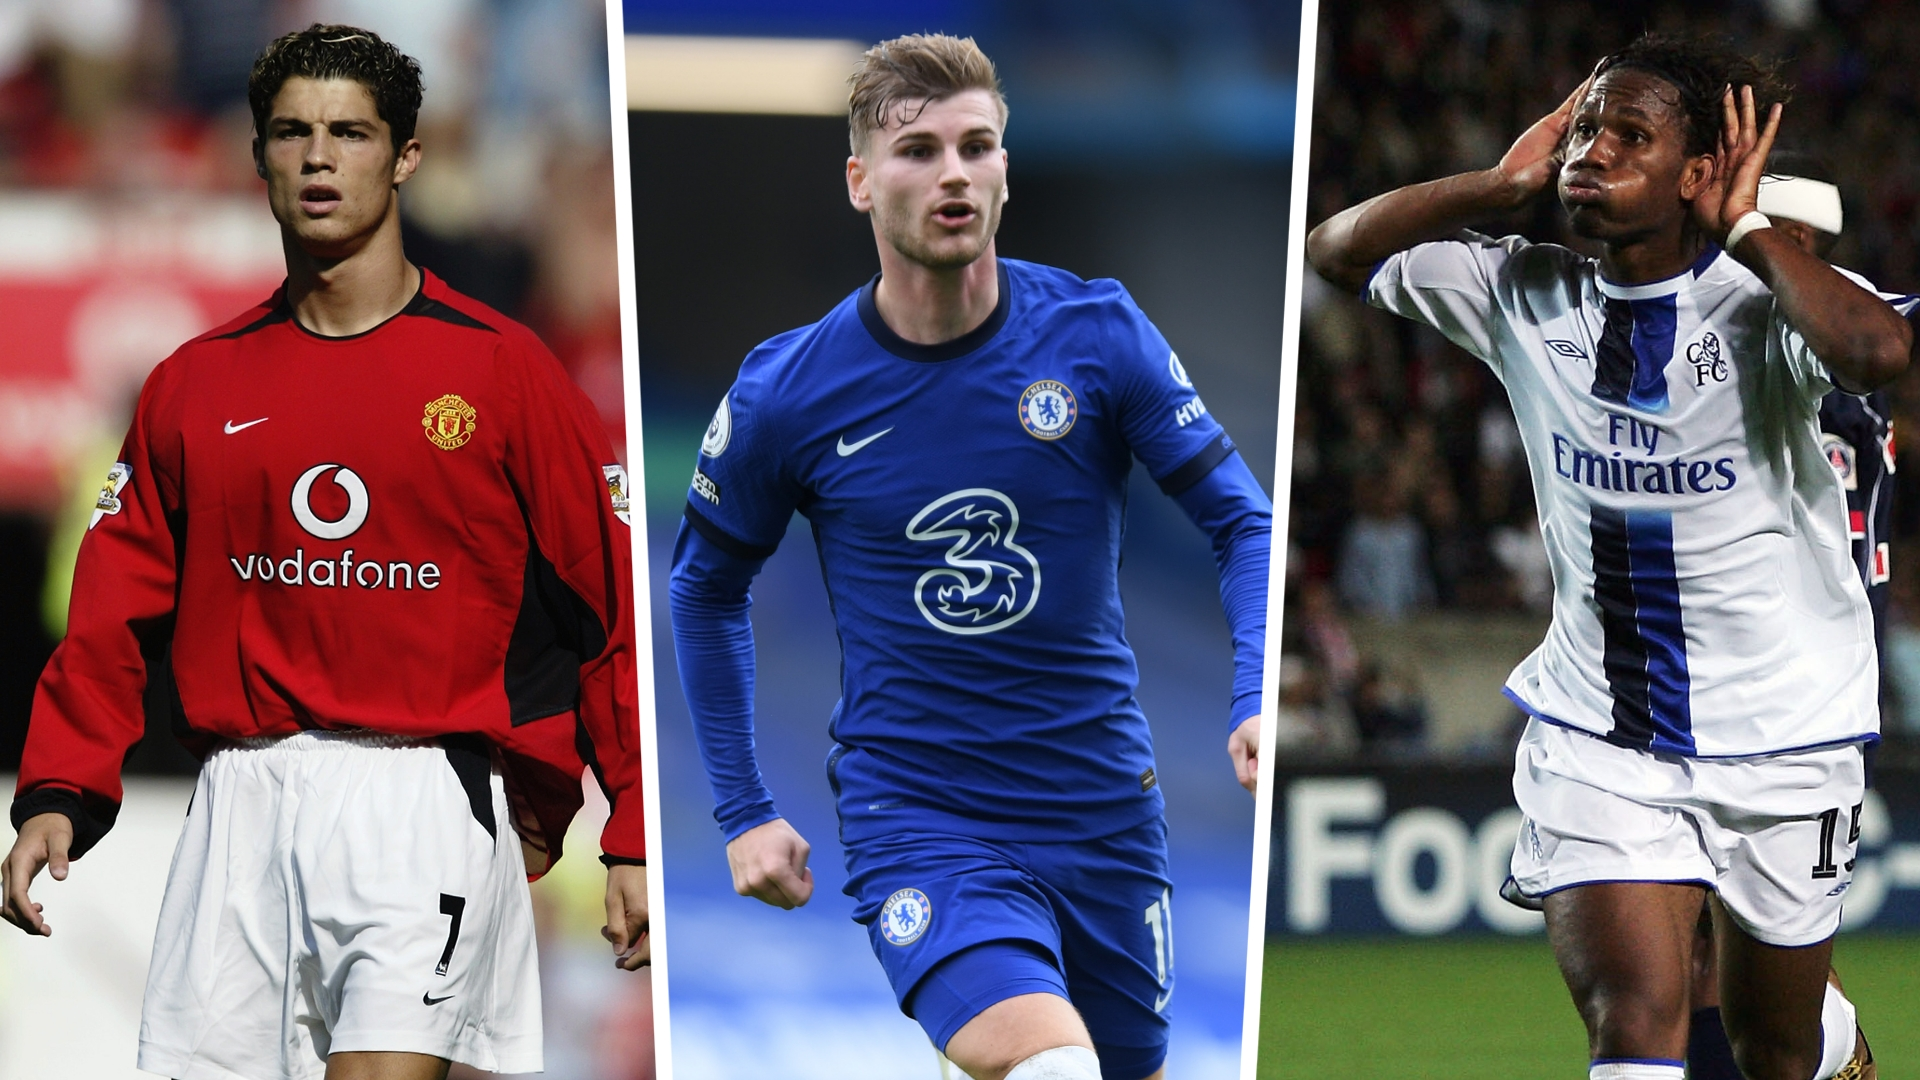 Werner idolised 'young Ronaldo' & Drogba as Chelsea striker looks to write his own success story